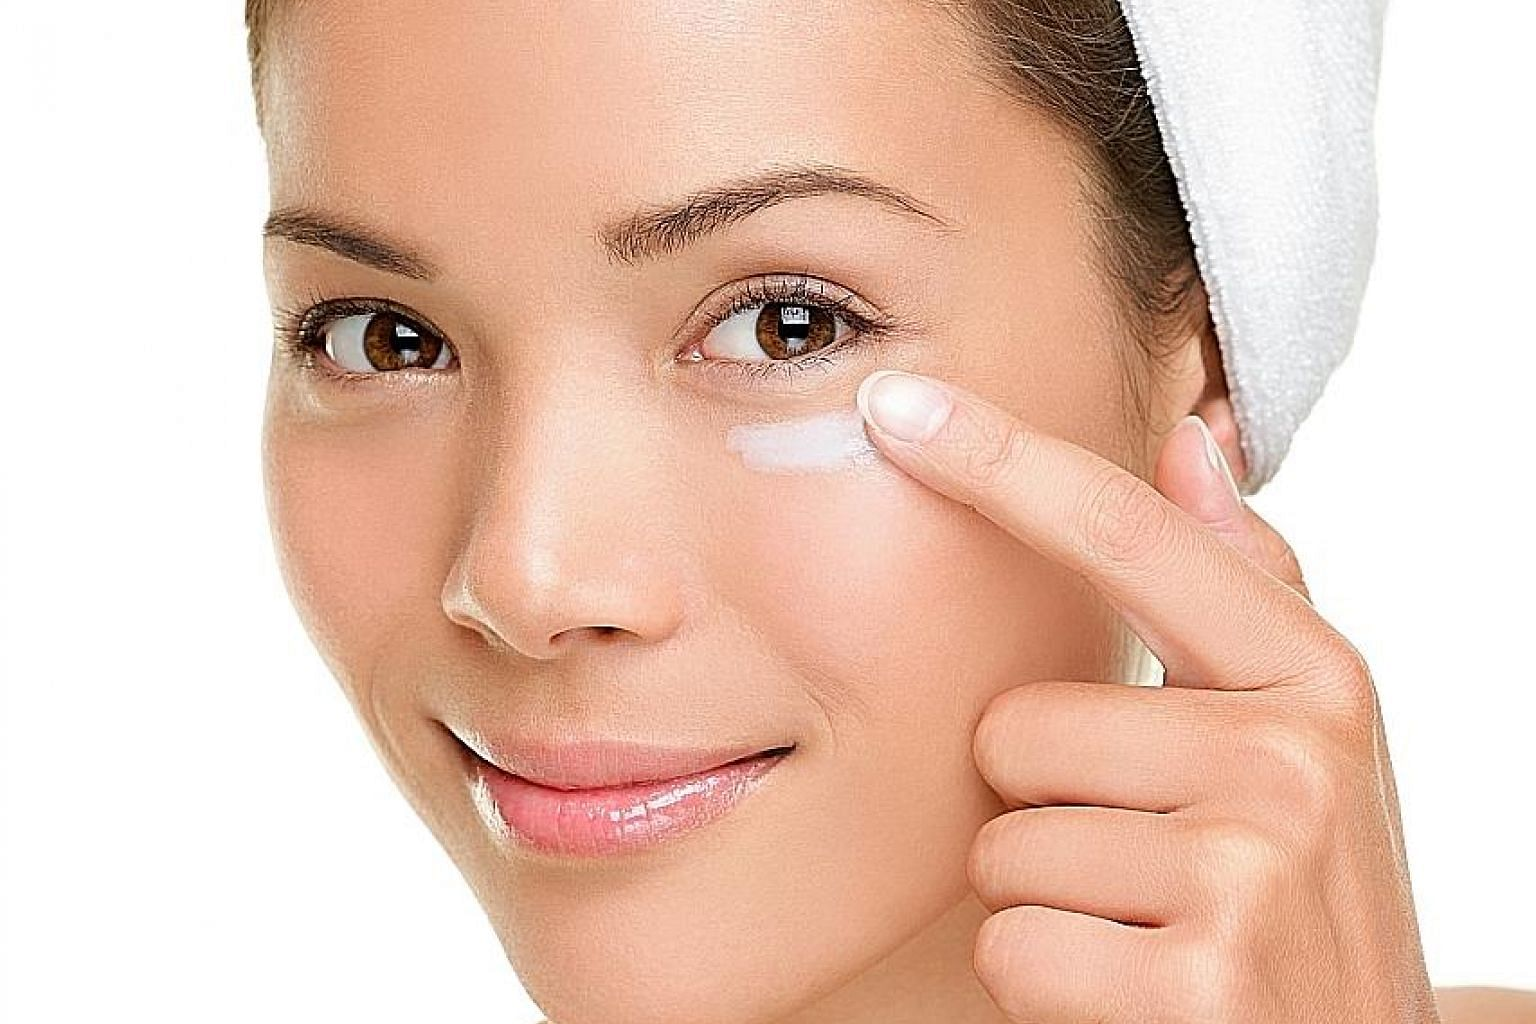 Use your fingers to apply eye cream in a rolling circular motion under the eye, from the nose bridge towards the temple, to improve lymphatic drainage and ease puffiness.